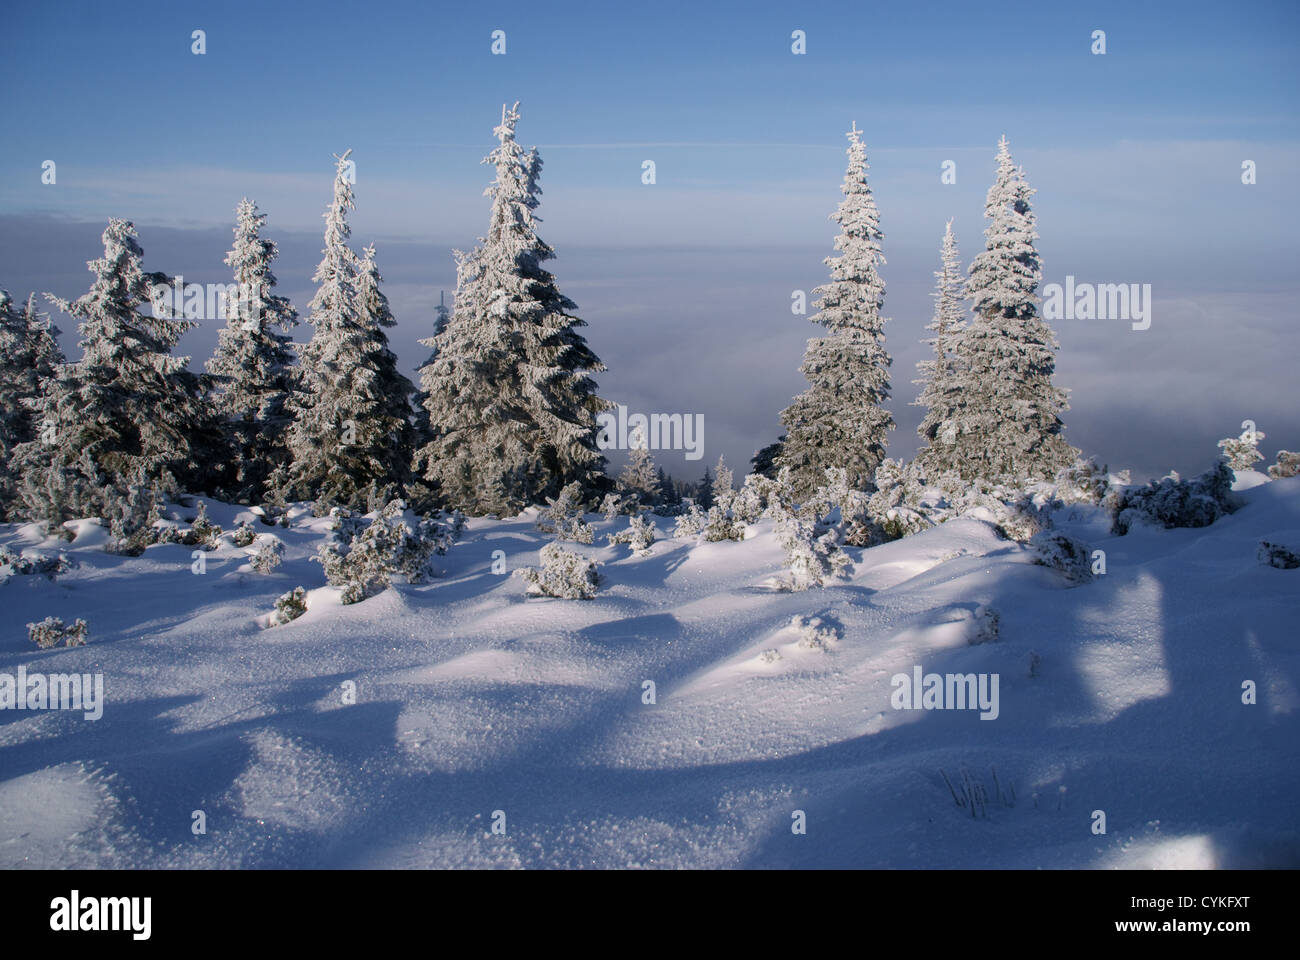 spruces in mountains at winter, Poland - Stock Image